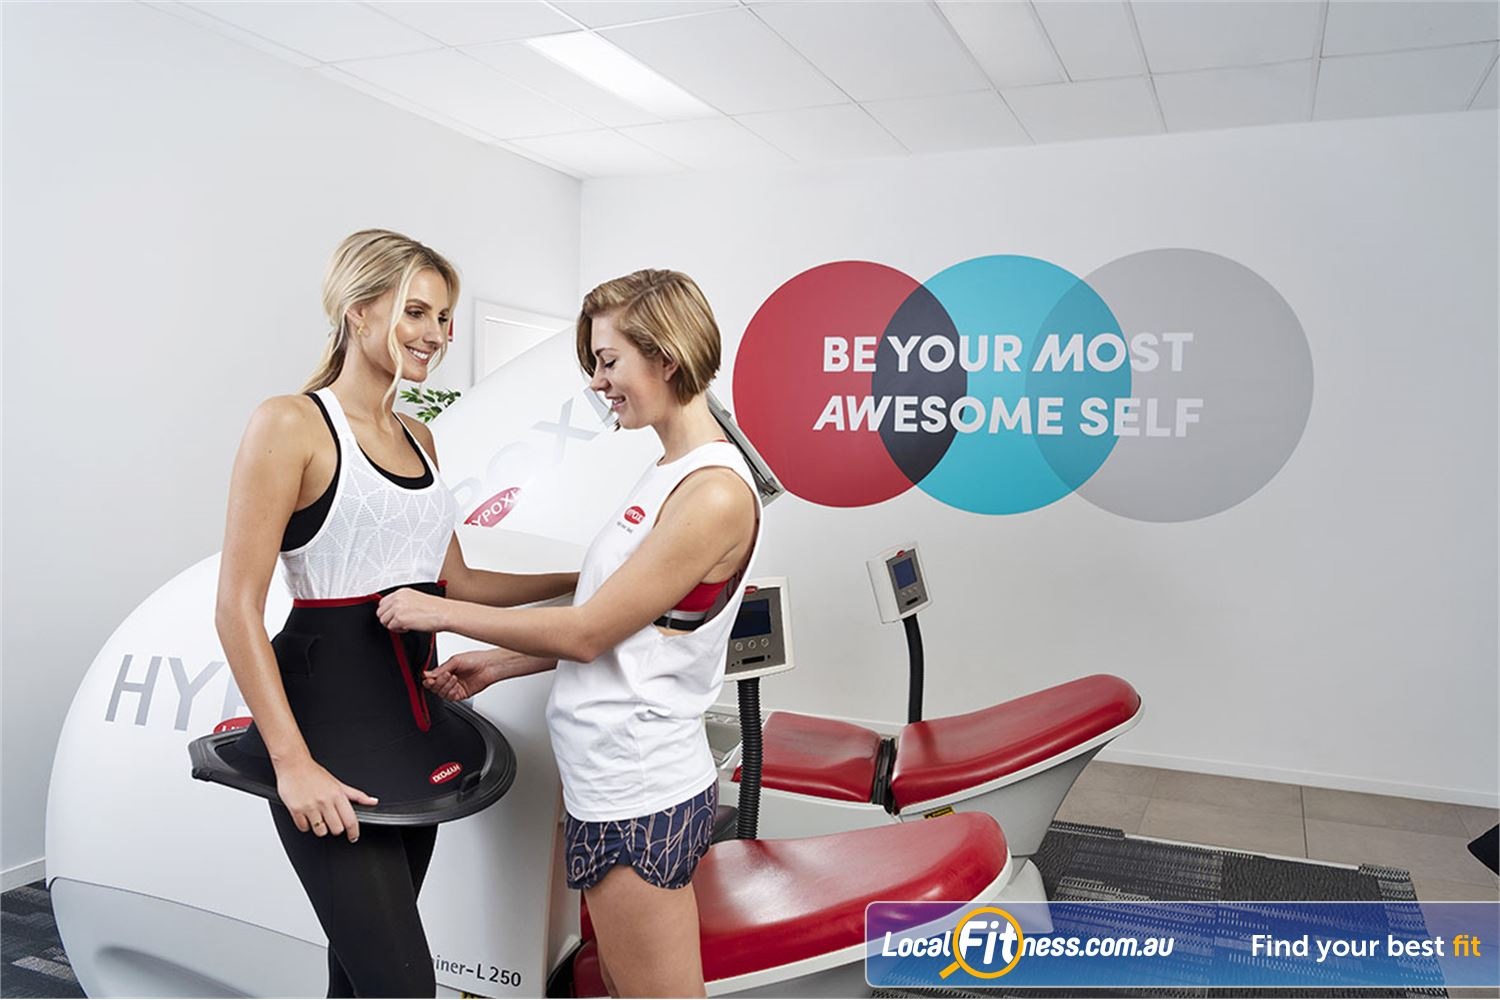 HYPOXI Weight Loss Near Burwood East Our Glen Waverley HYPOXI weight-loss coaches will monitor your progress.